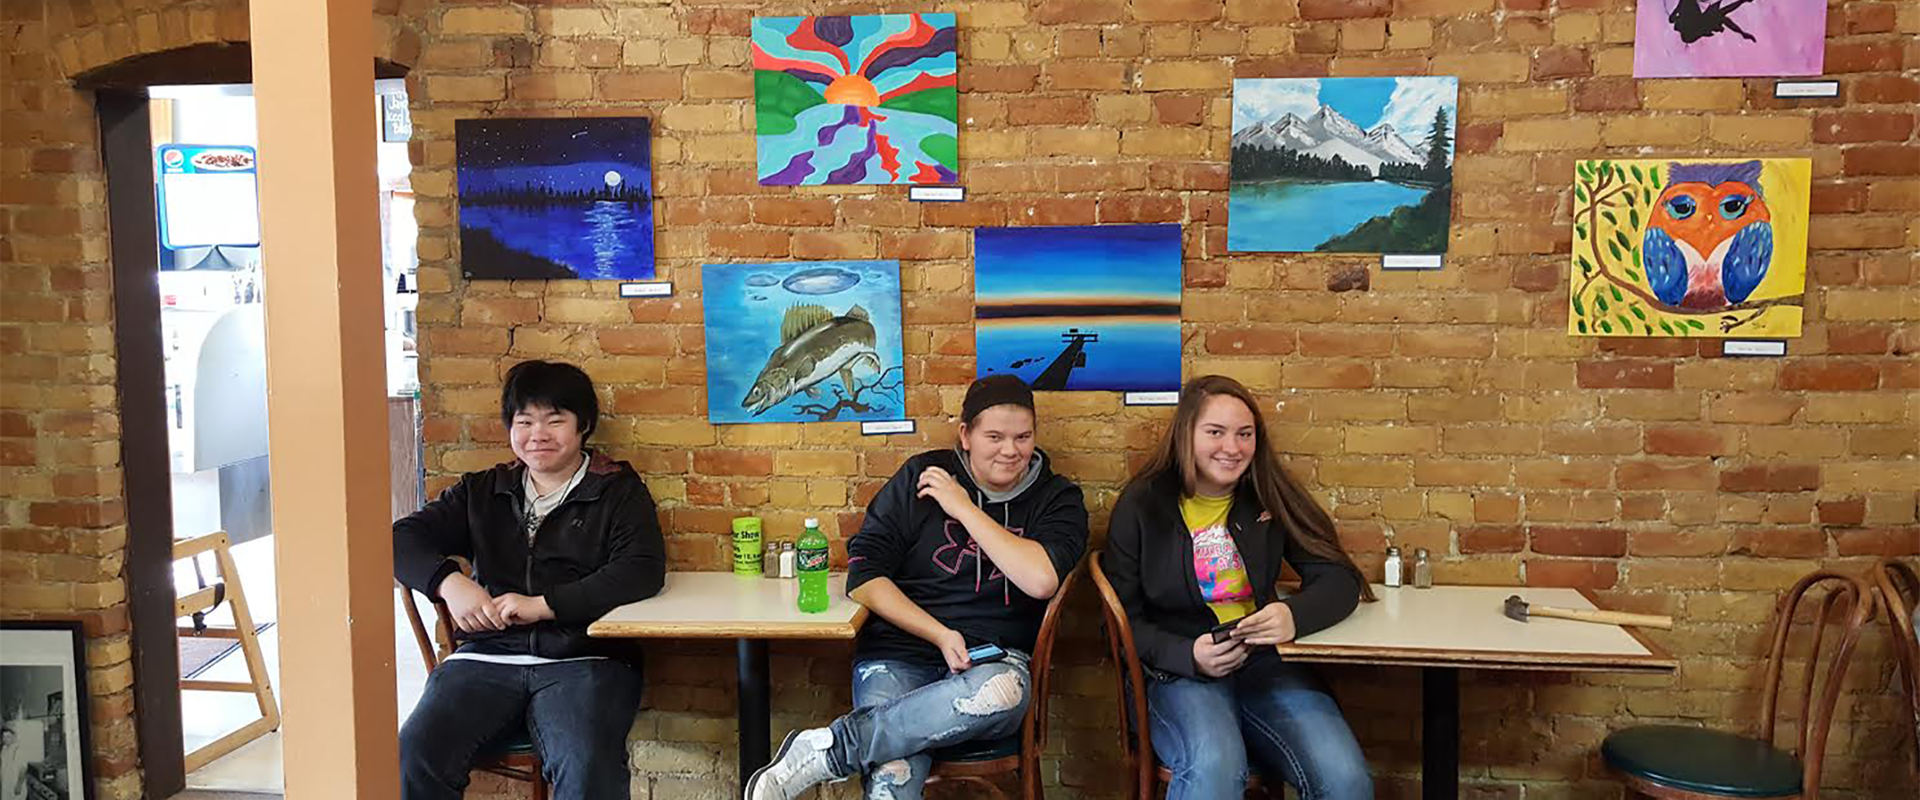 YME Art students displaying their artwork at Java River in Montevideo.